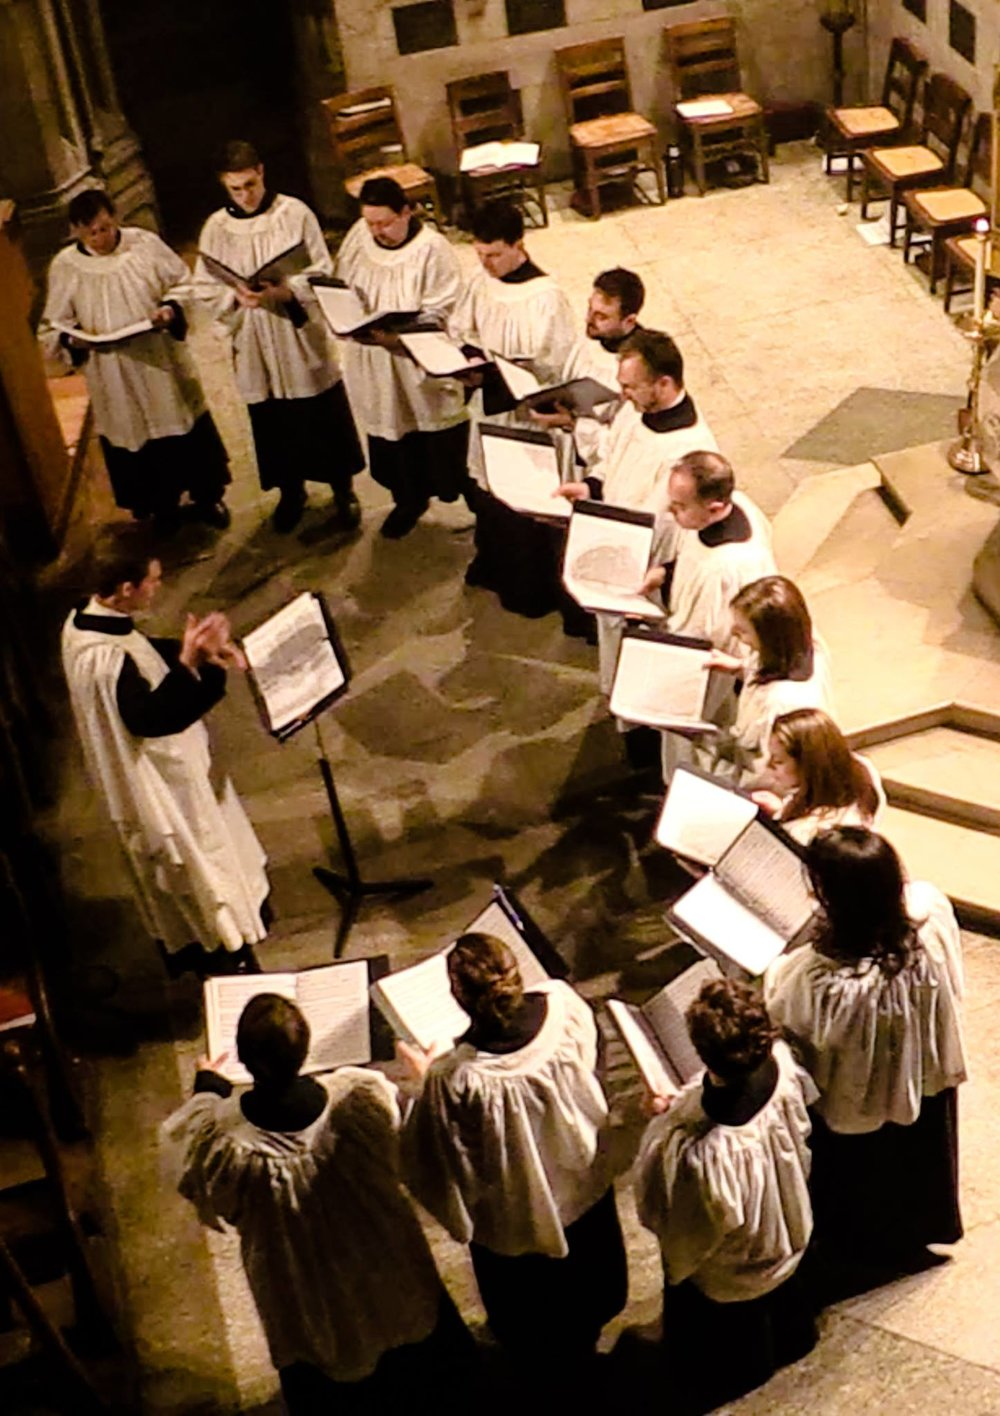 James conducting the choir of Saint Ignatius of Antioch